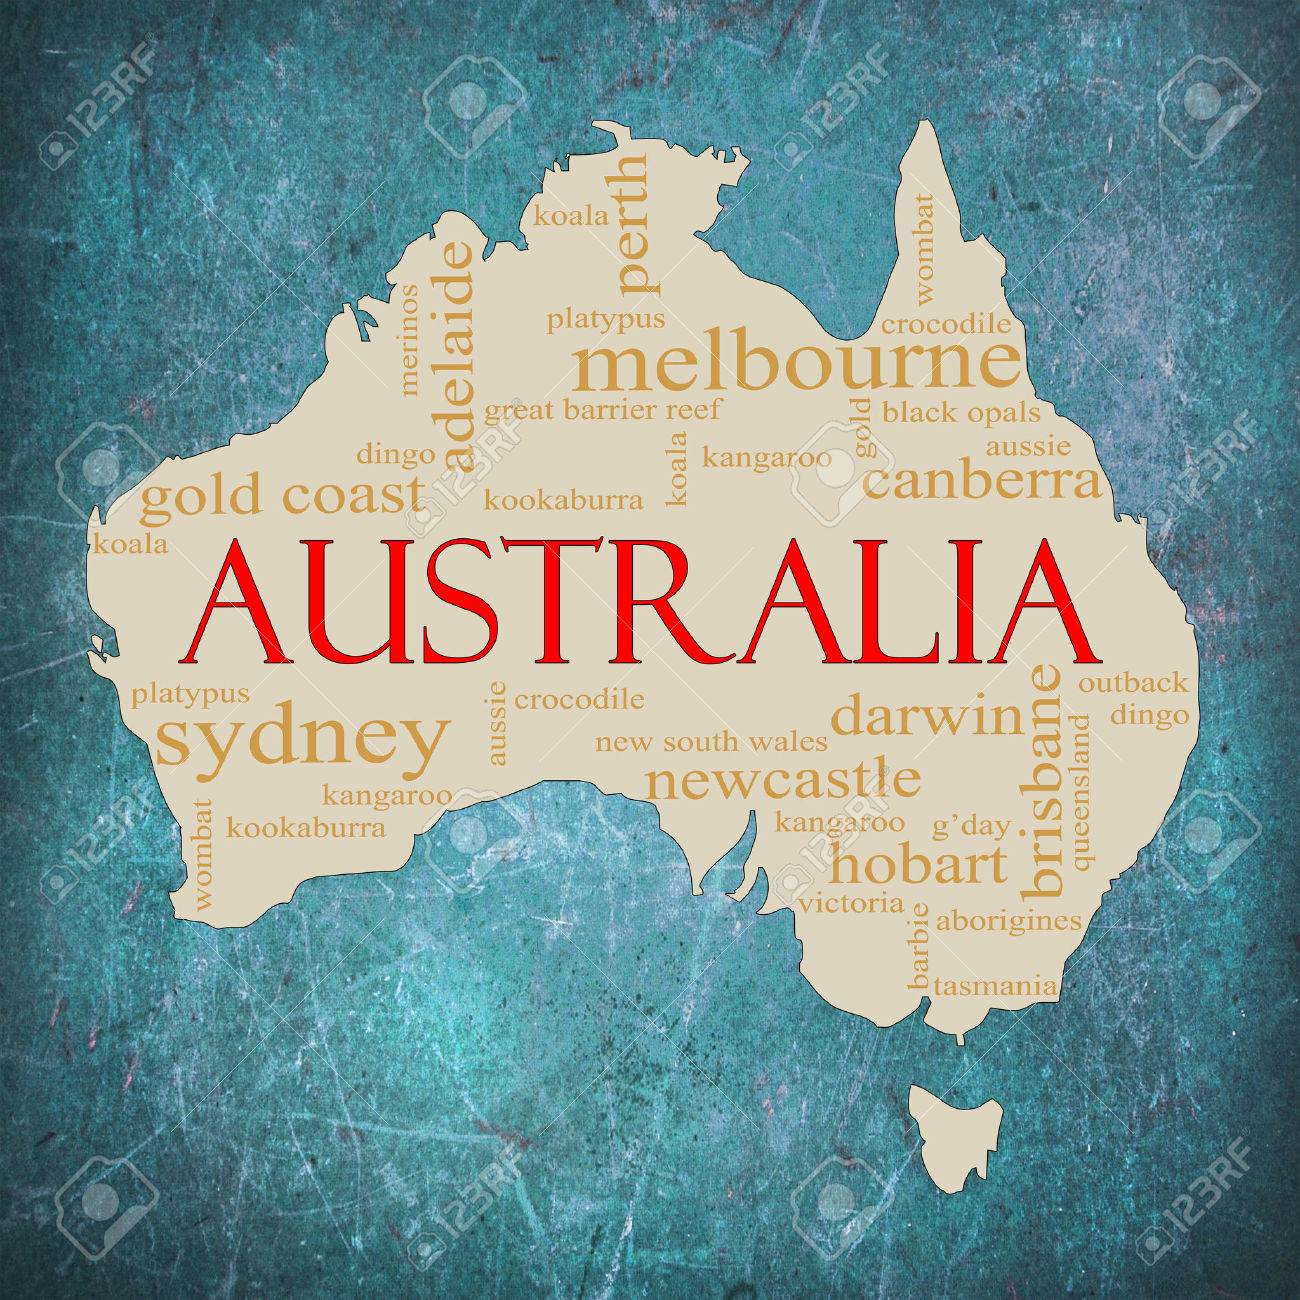 Map Around Australia.A Map Of Australia On A Blue Grunge Background With Different